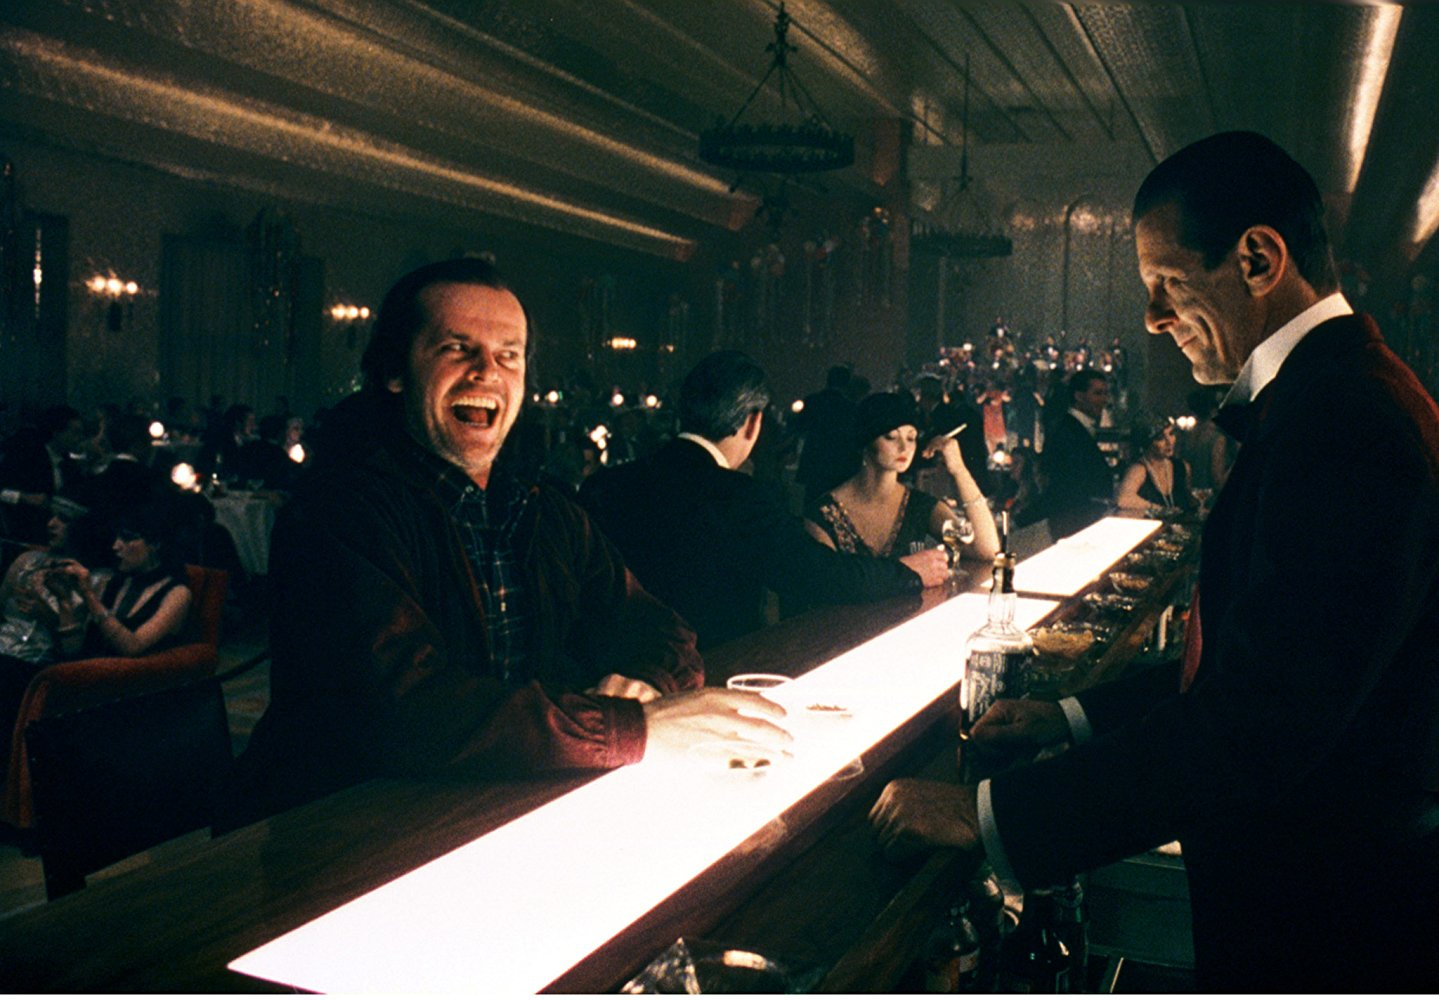 Jack Nicholson and barman Joe Turkel in The Shining (1980)